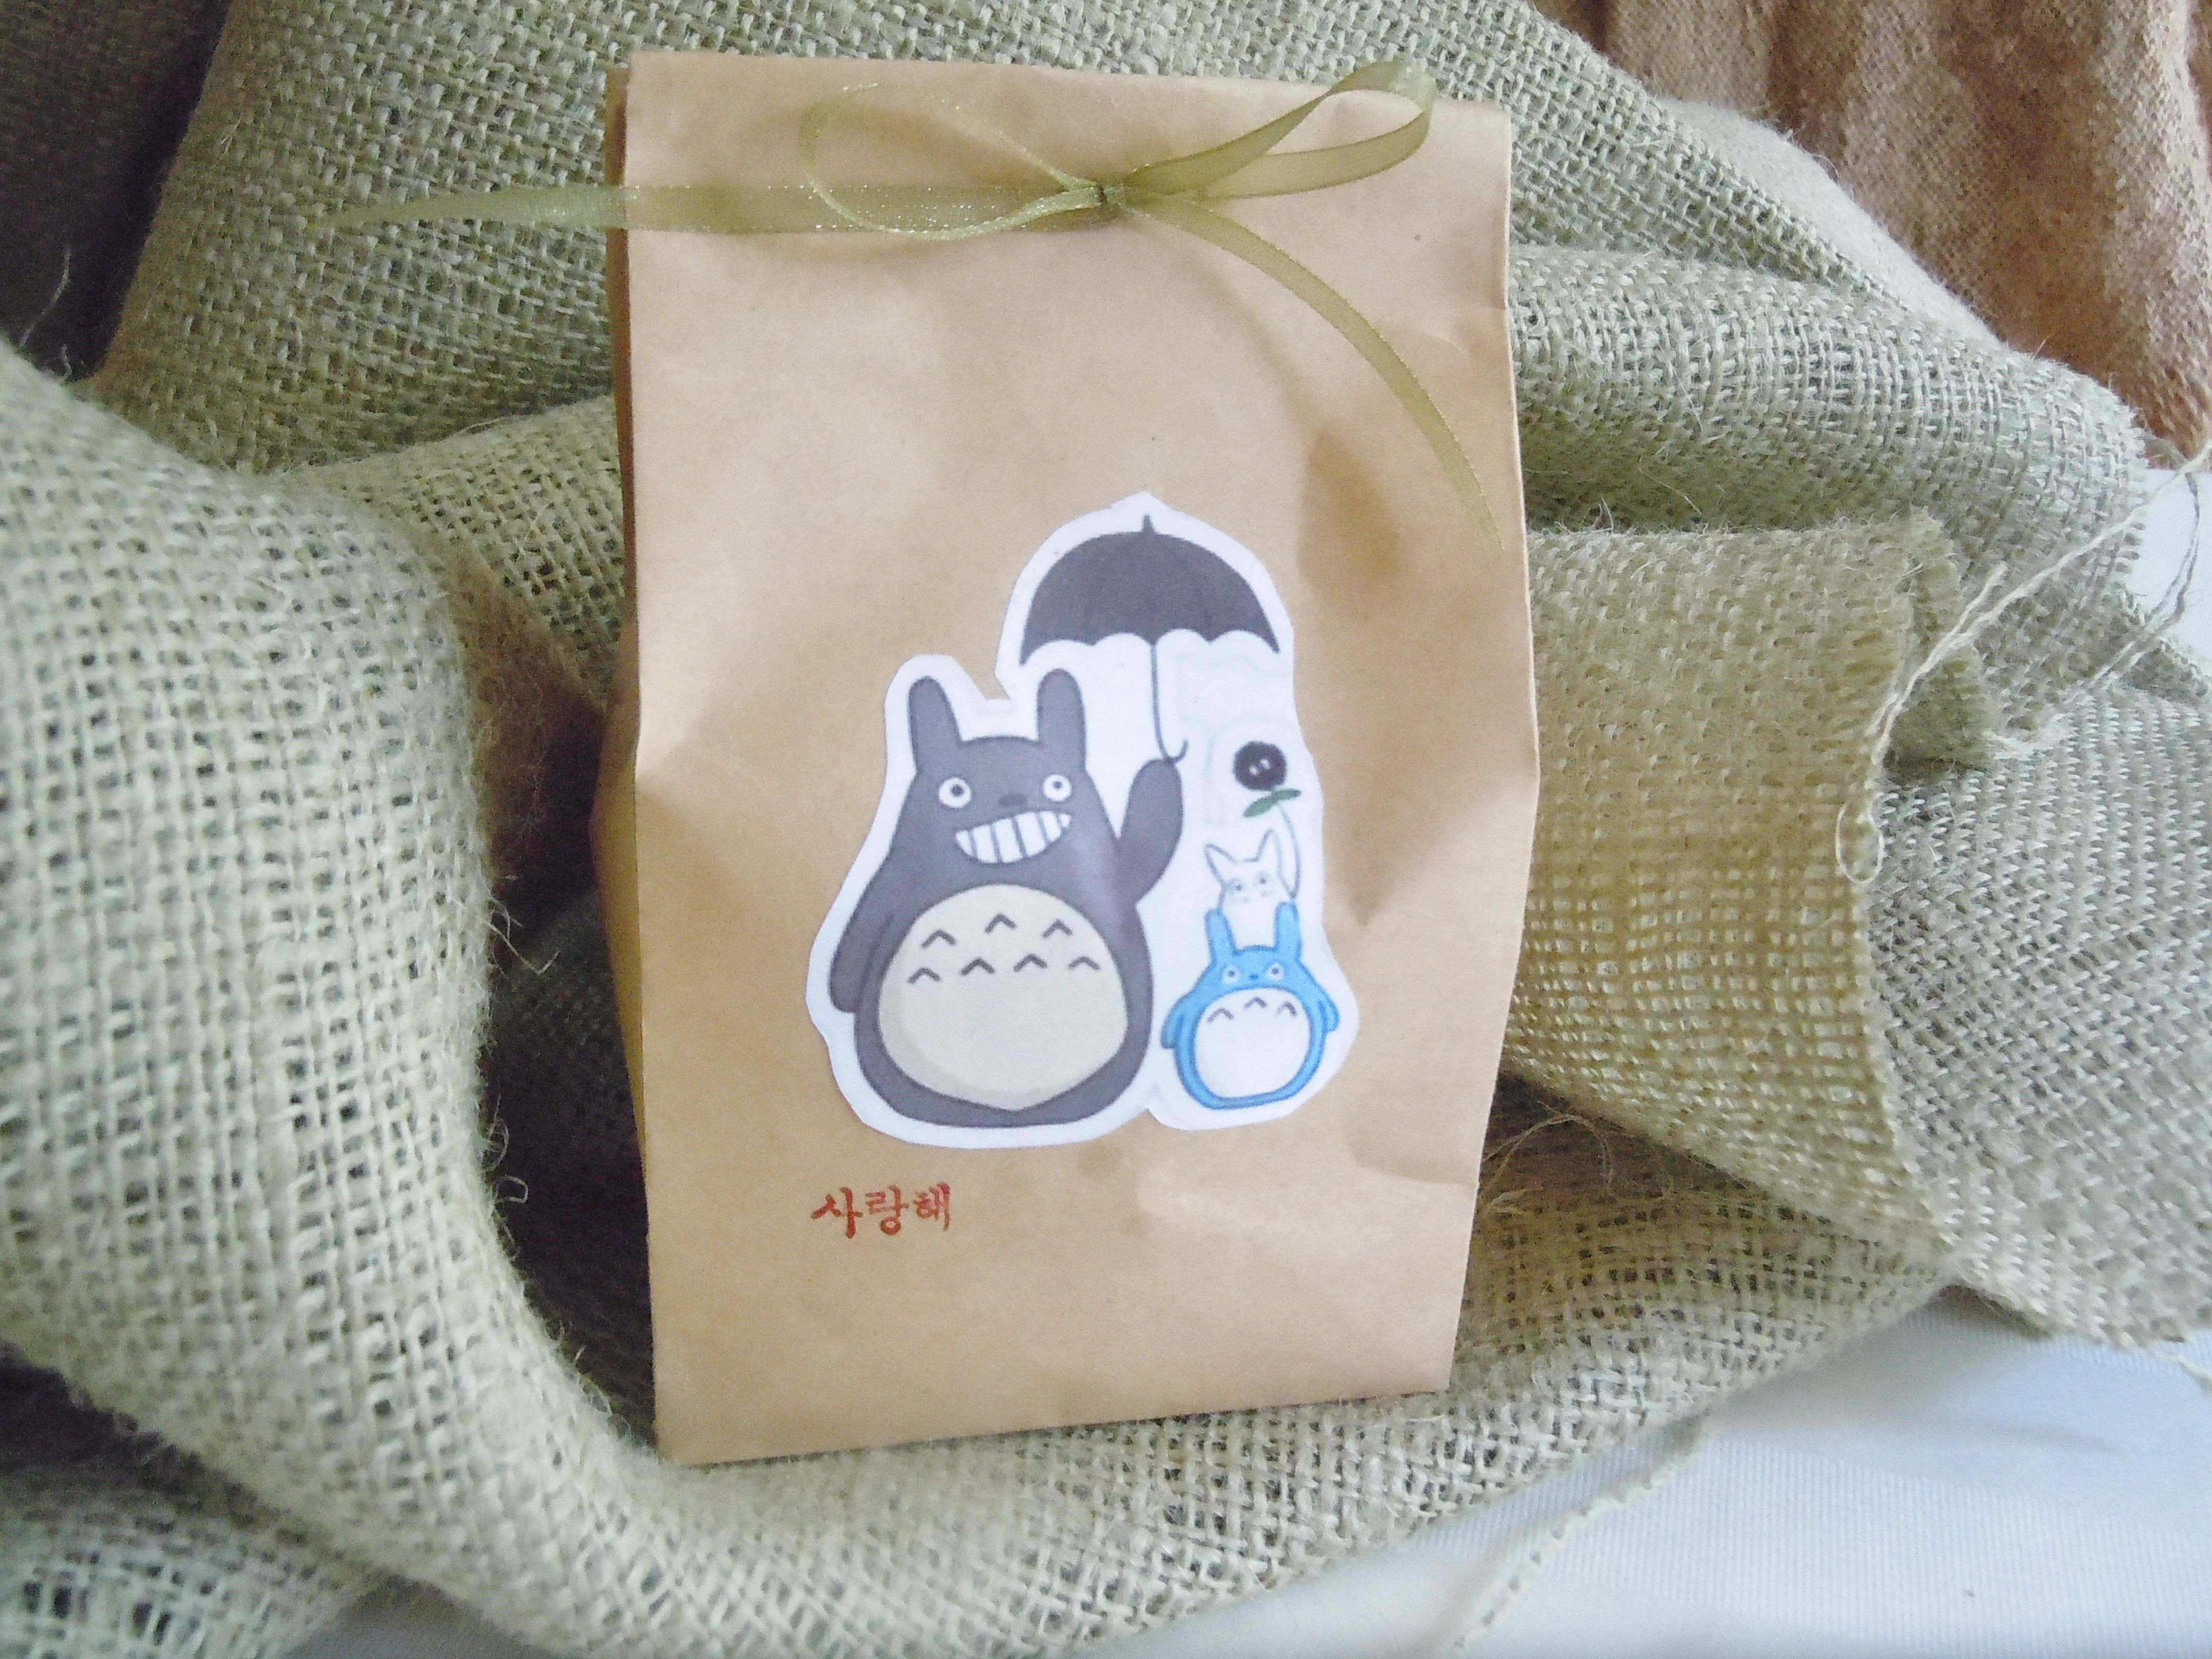 I got these small brown bags at the craft store and stuck a totoro